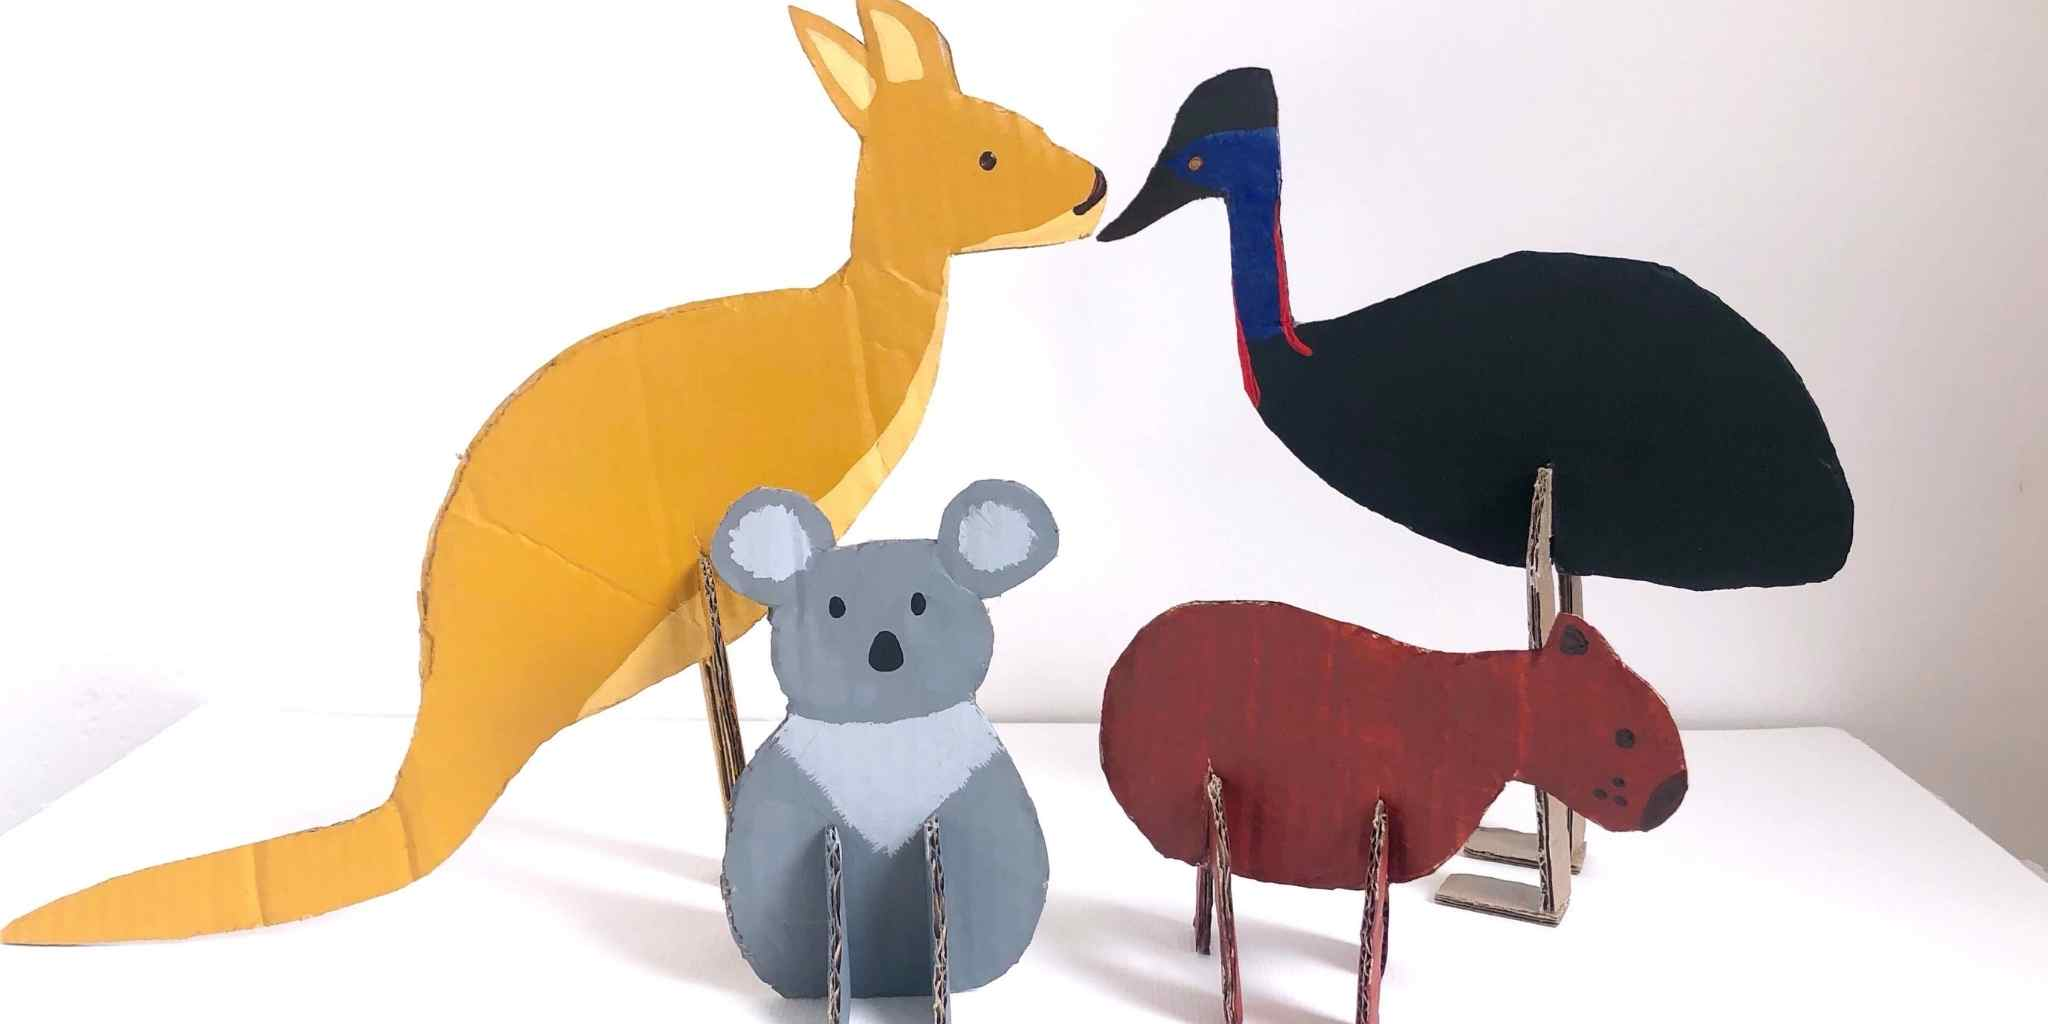 Make your own recycled Aussie animals out of cardboard